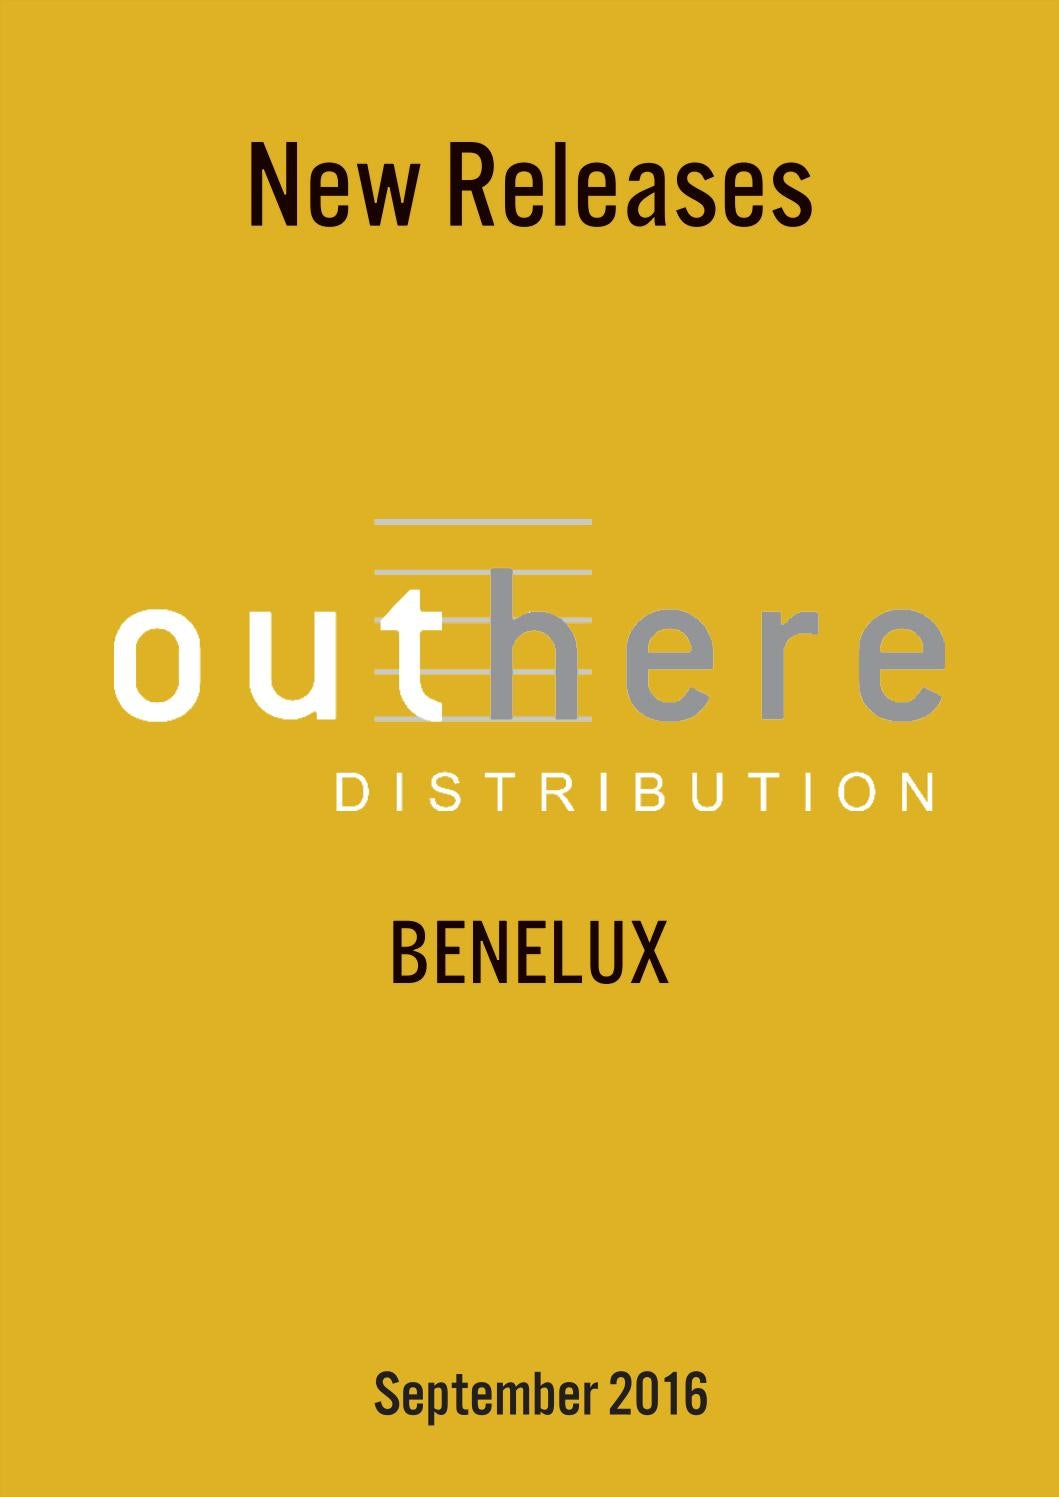 Release Book Outhere Distribution BENELUX September 2016